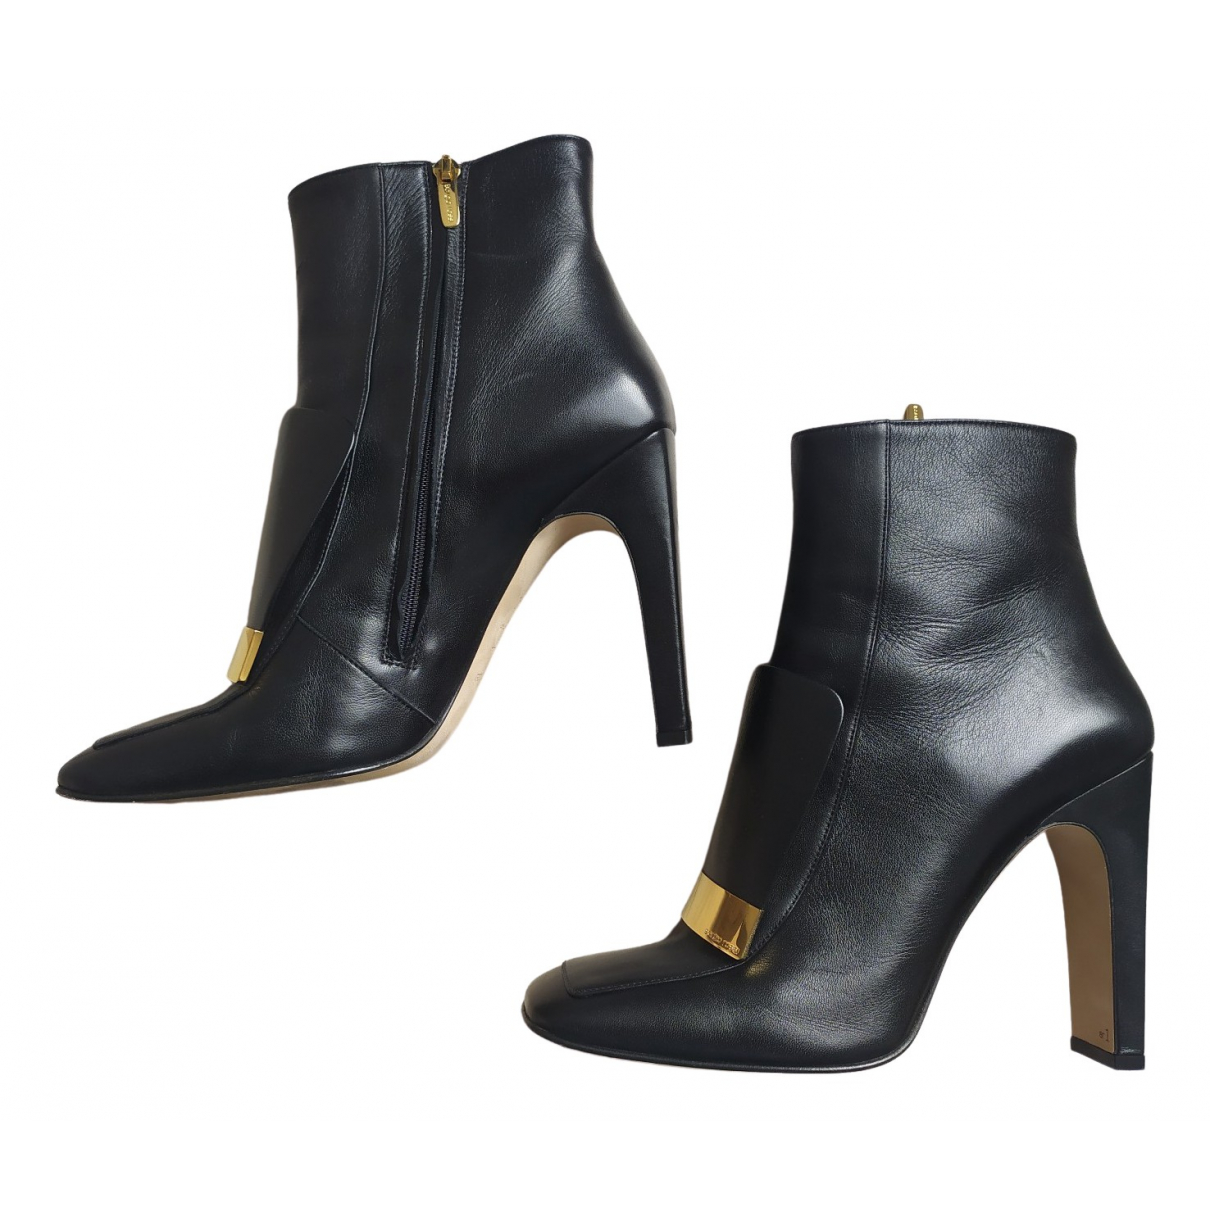 Sergio Rossi SR1 Black Leather Ankle boots for Women 40 EU